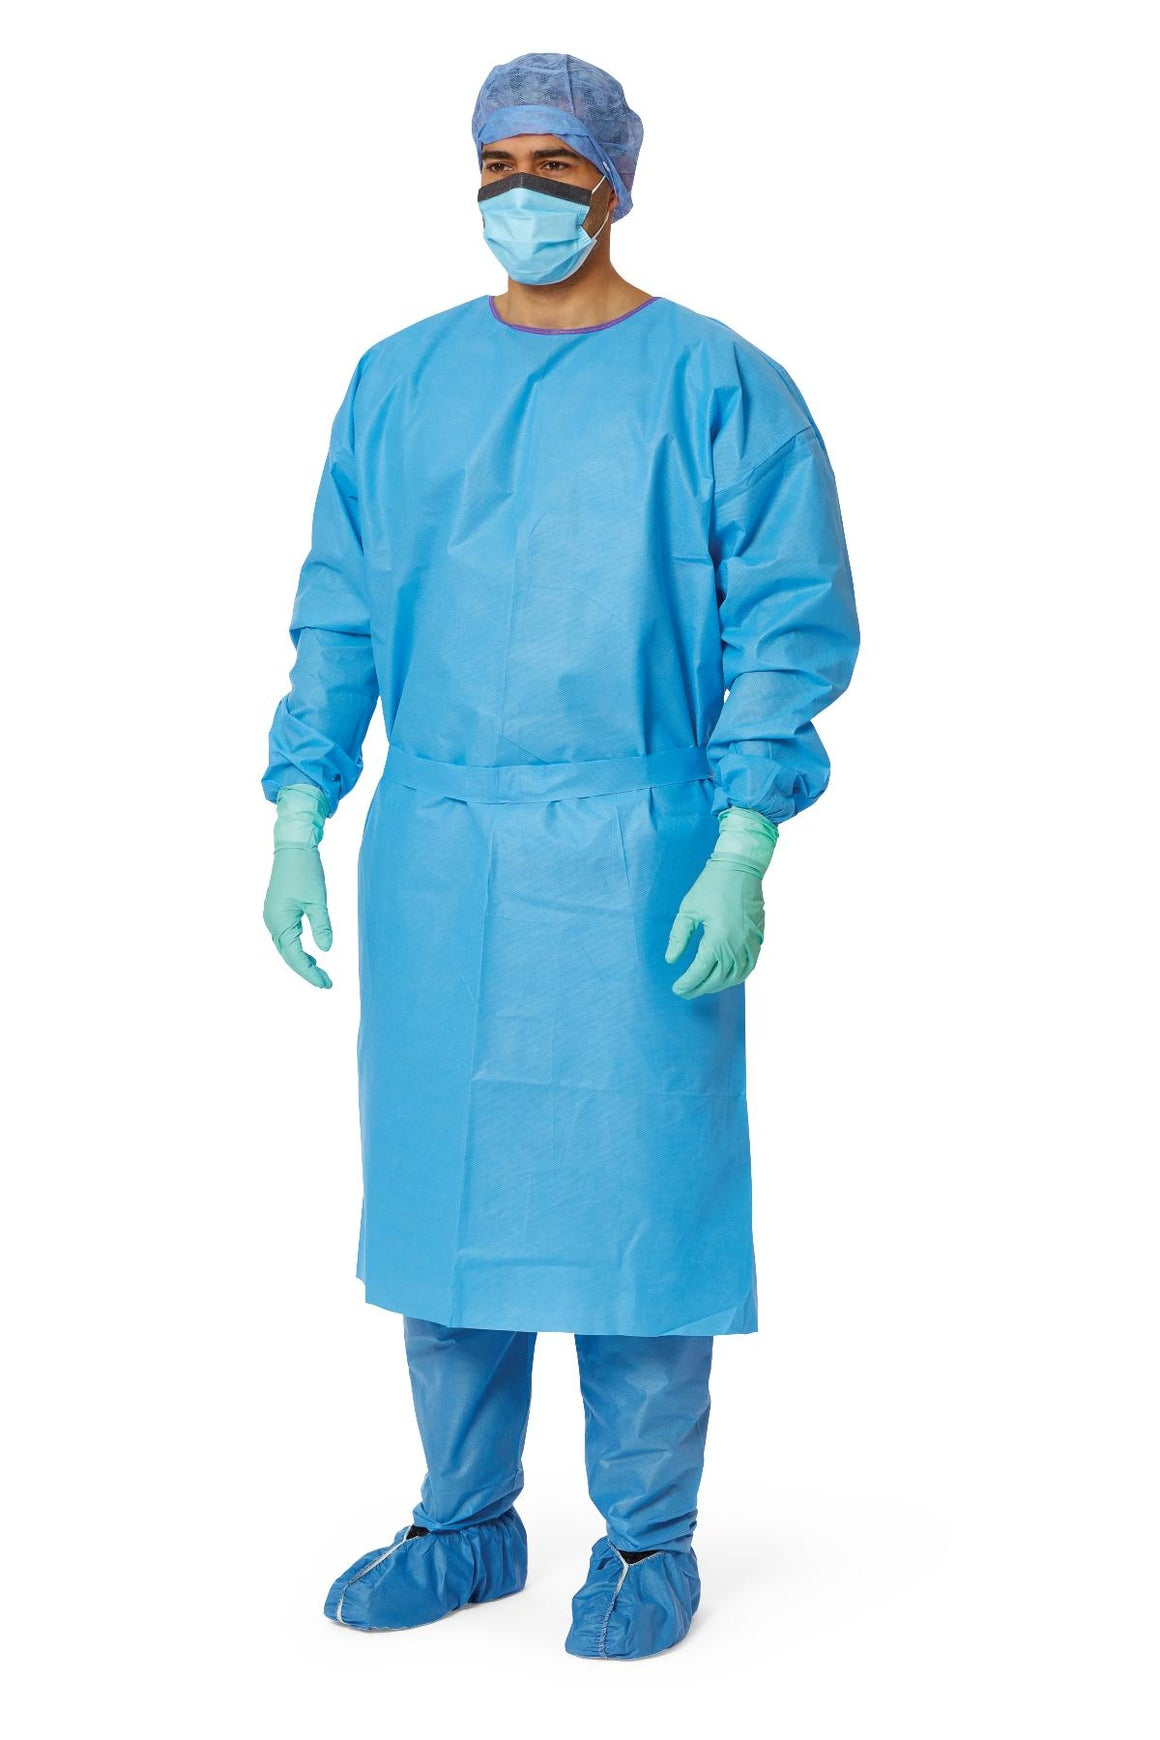 AAMI Level 3 Isolation Gowns,Blue,X-Large, Case of 50